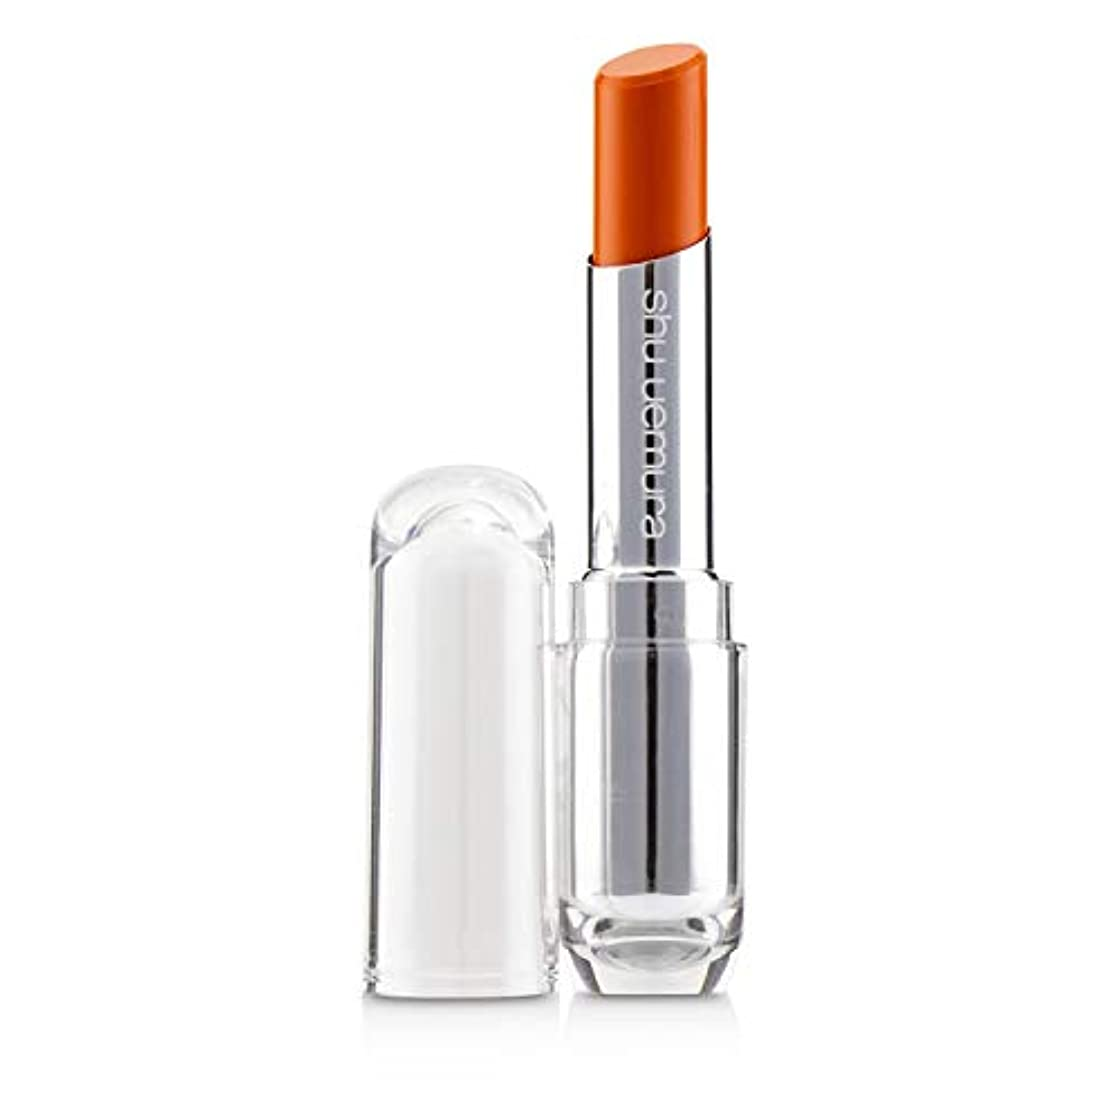 シュウウエムラ Rouge Unlimited Sheer Shine Lipstick - # S OR 550 3.2g/0.01oz並行輸入品